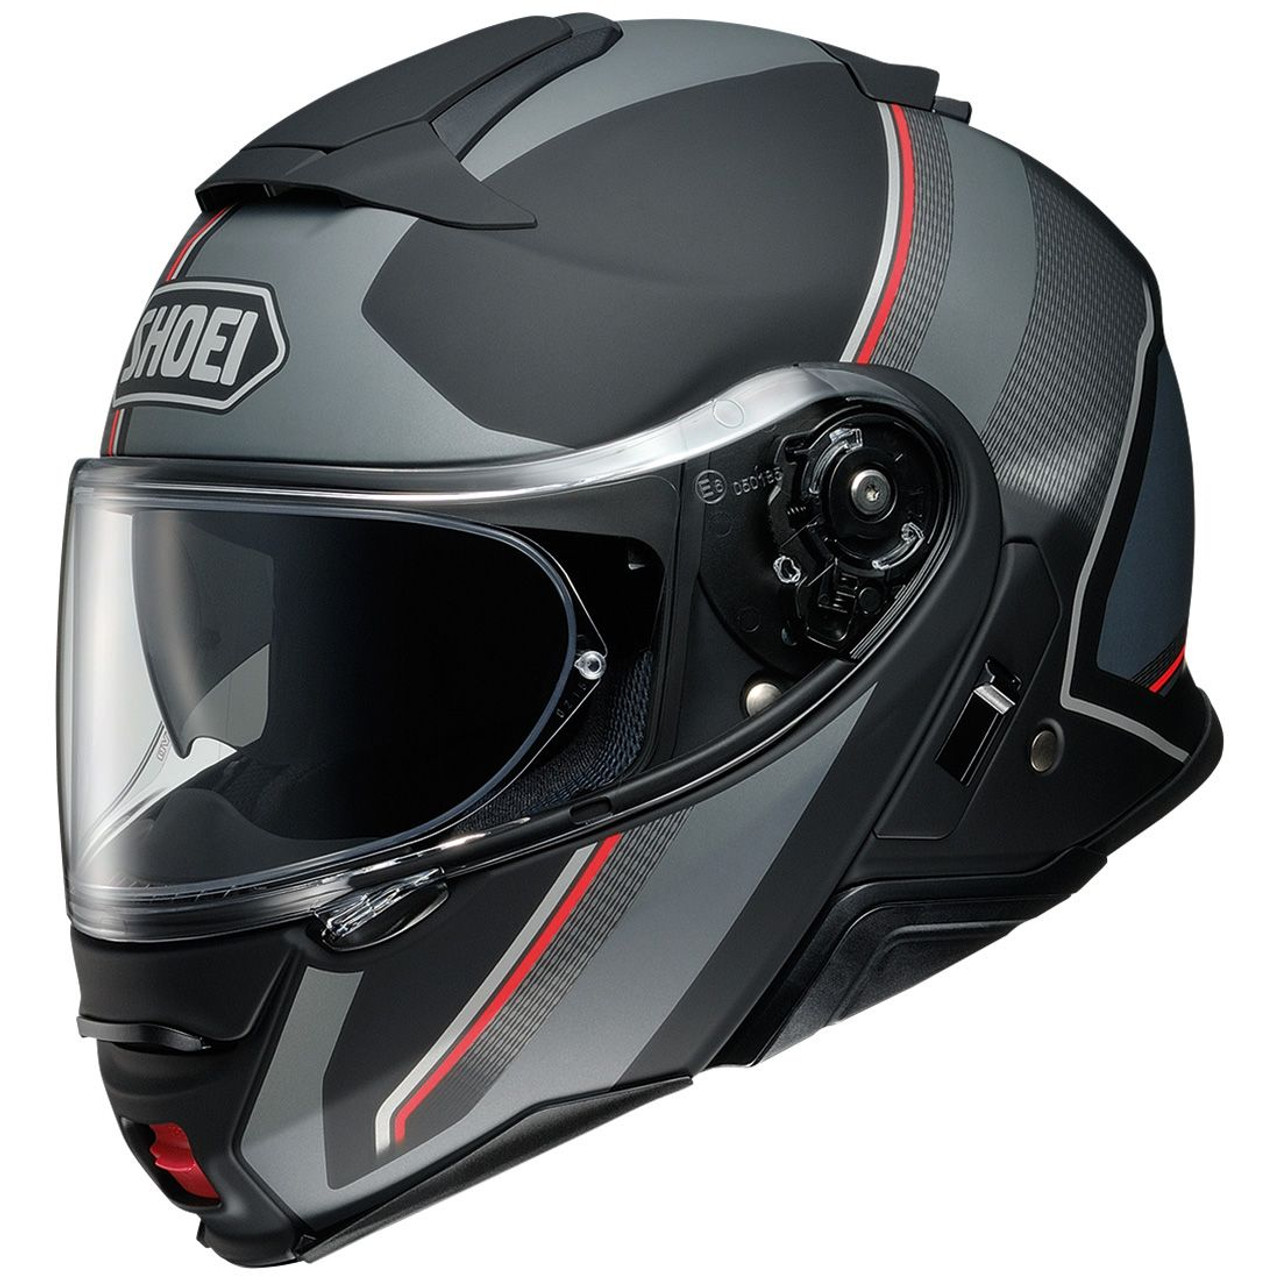 official info for lower price with Shoei Neotec II Helmet - Excursion - MotoMummy